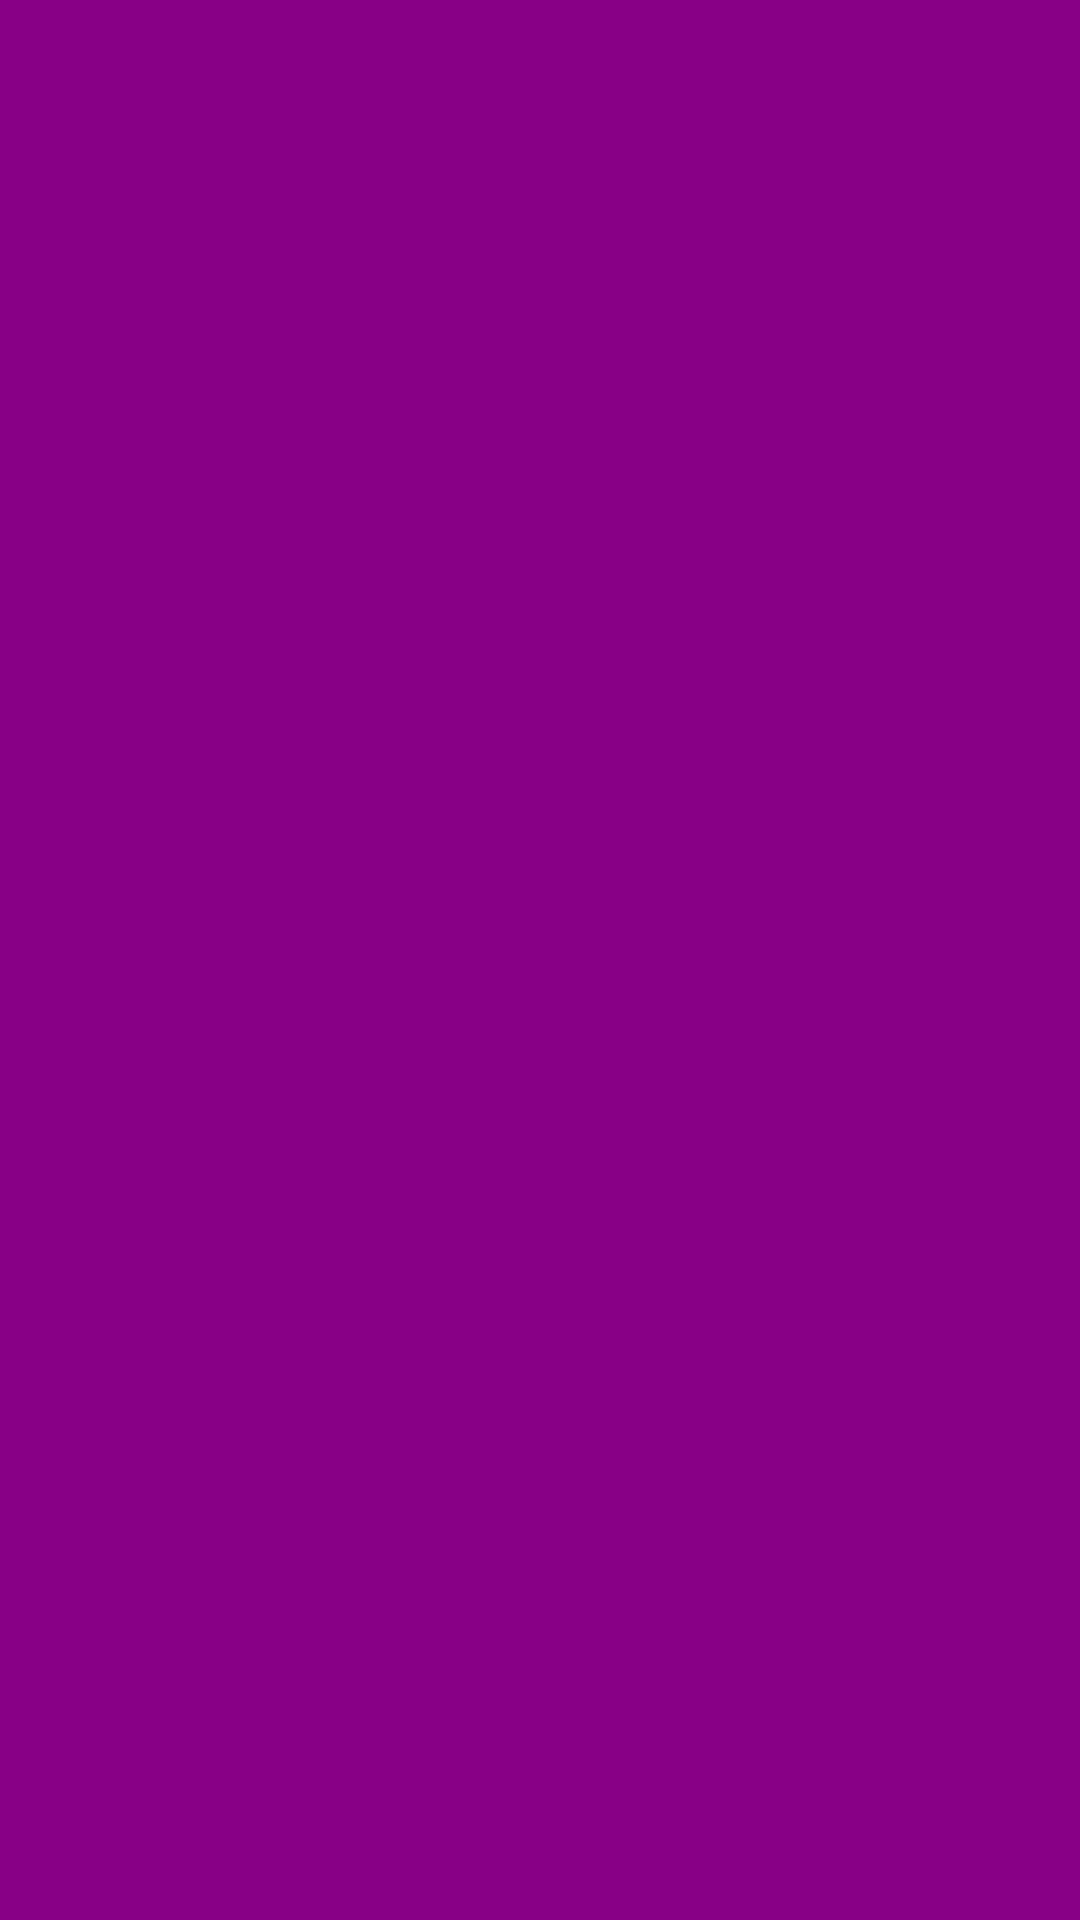 1080x1920 Mardi Gras Solid Color Background